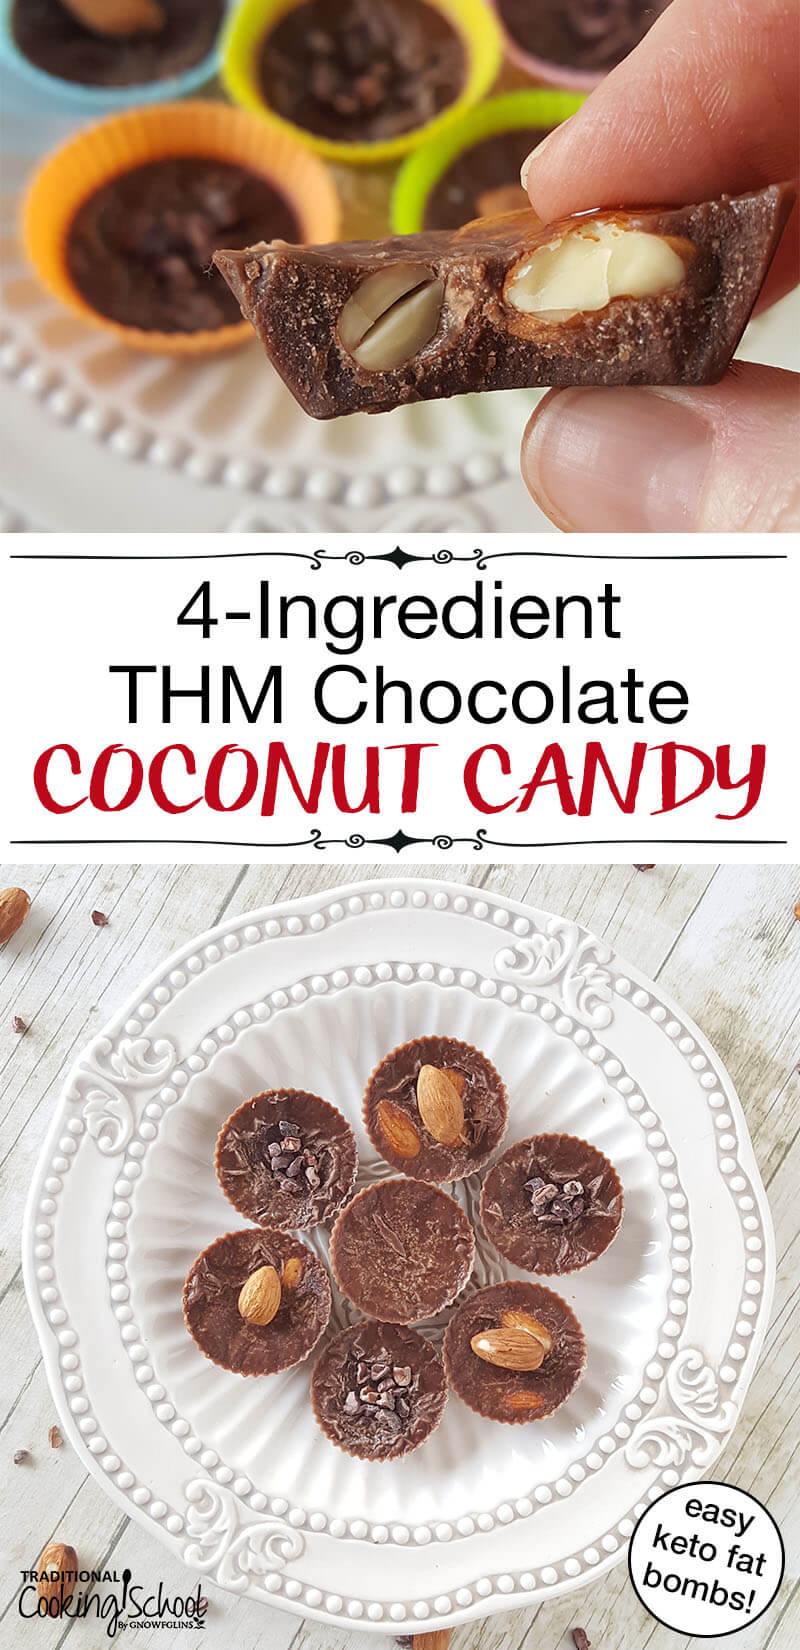 """image collage of low carb candy with text overlay: """"4-Ingredient THM Chocolate Coconut Candy (easy keto fat bombs!)"""""""